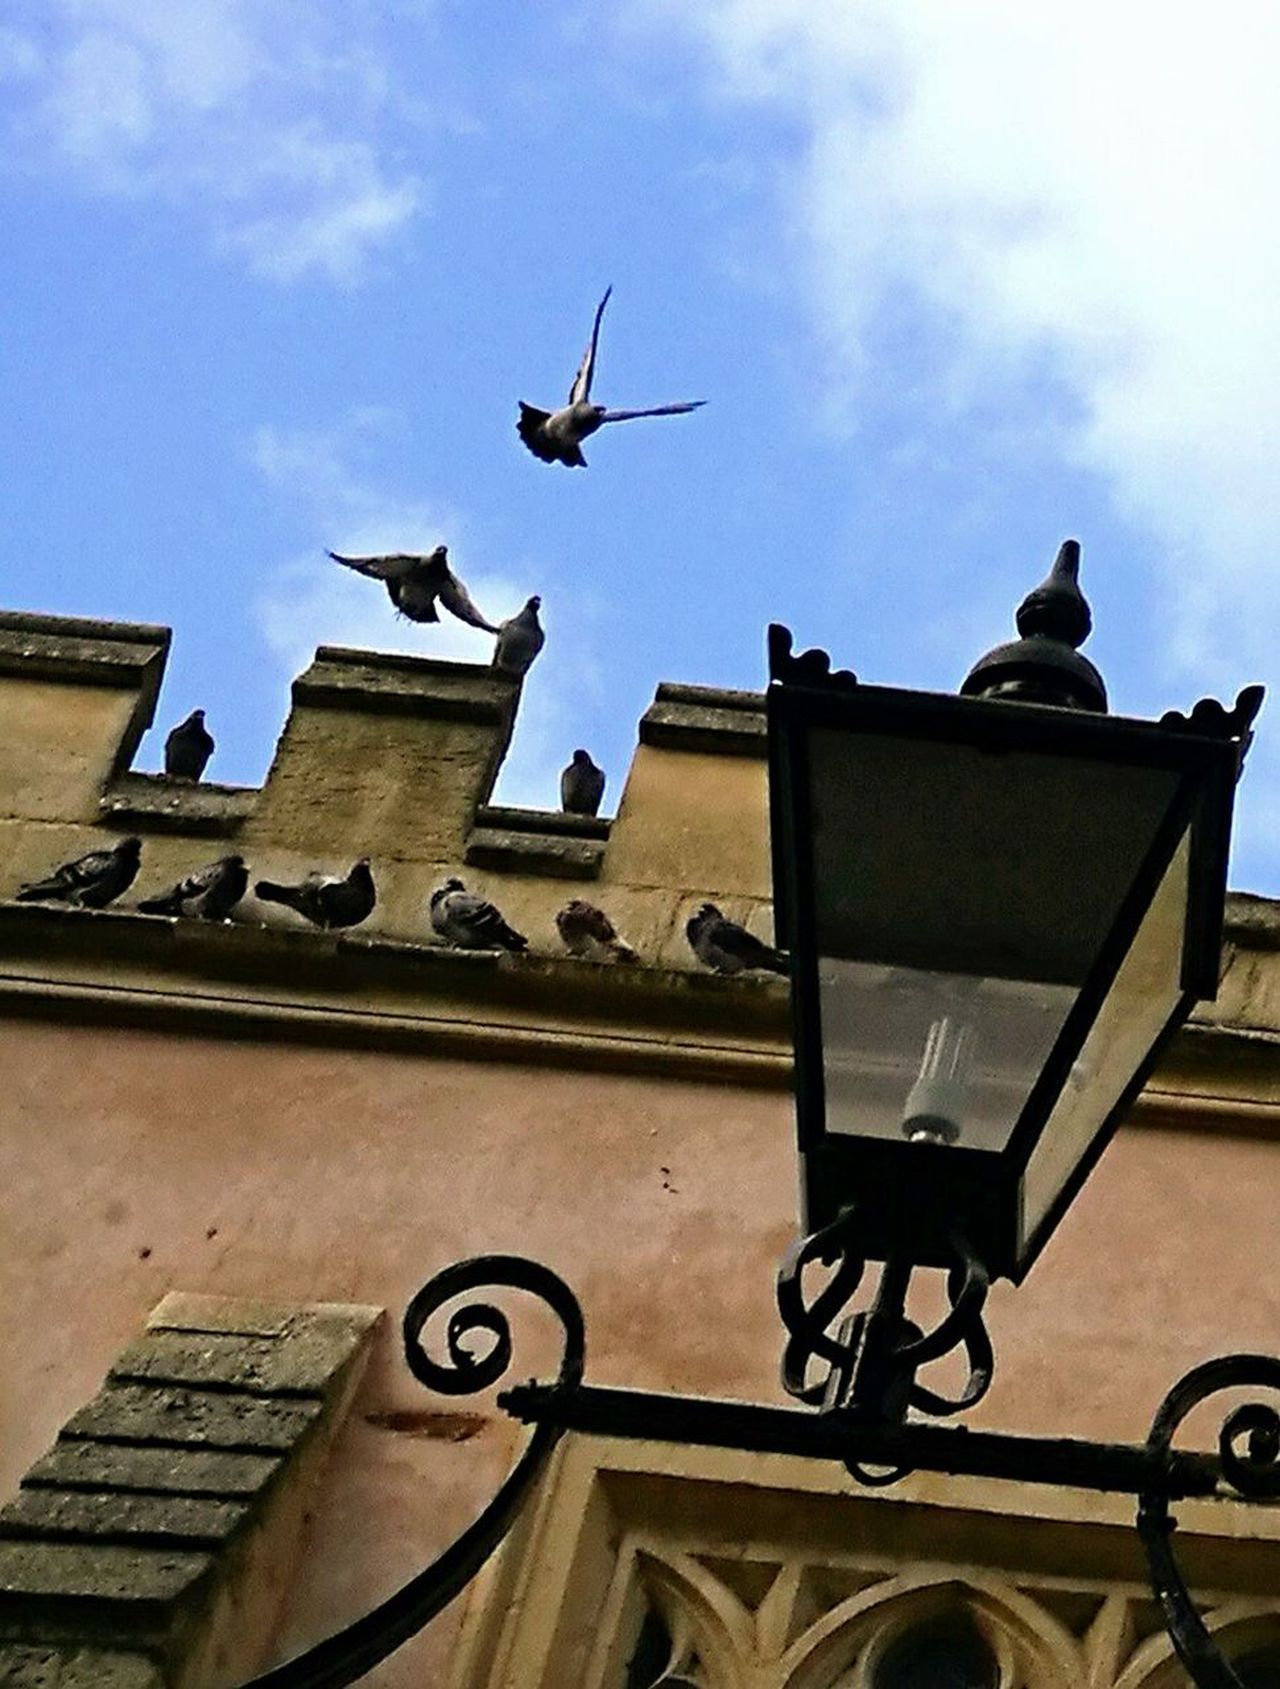 Birds of the city🏙🕊 Adapted To The City Built Structure Church Piegons Low Angle View No People City Day St James Church Birds Architecture Winter 2017 Nature And Architecture In Harmony Urban Views Nature In The City Taking Flight Blue Sky Bristol Uk EyeEmNewHere EyeEm New Here